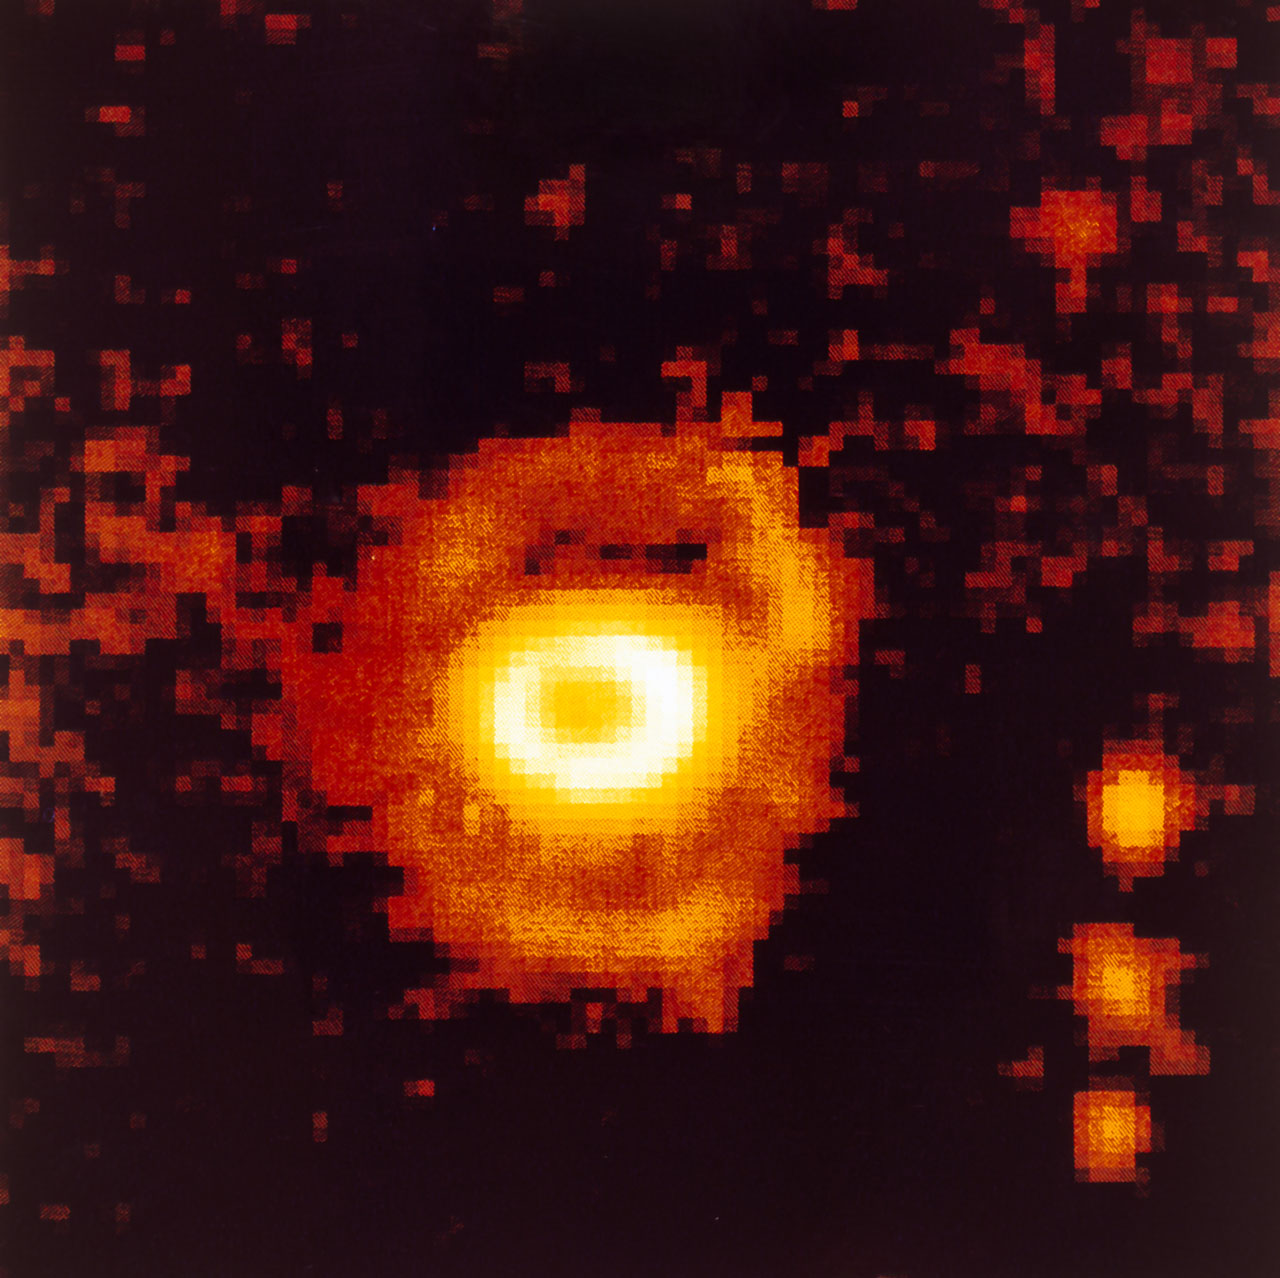 Ring-shaped nebula around SN 1987A